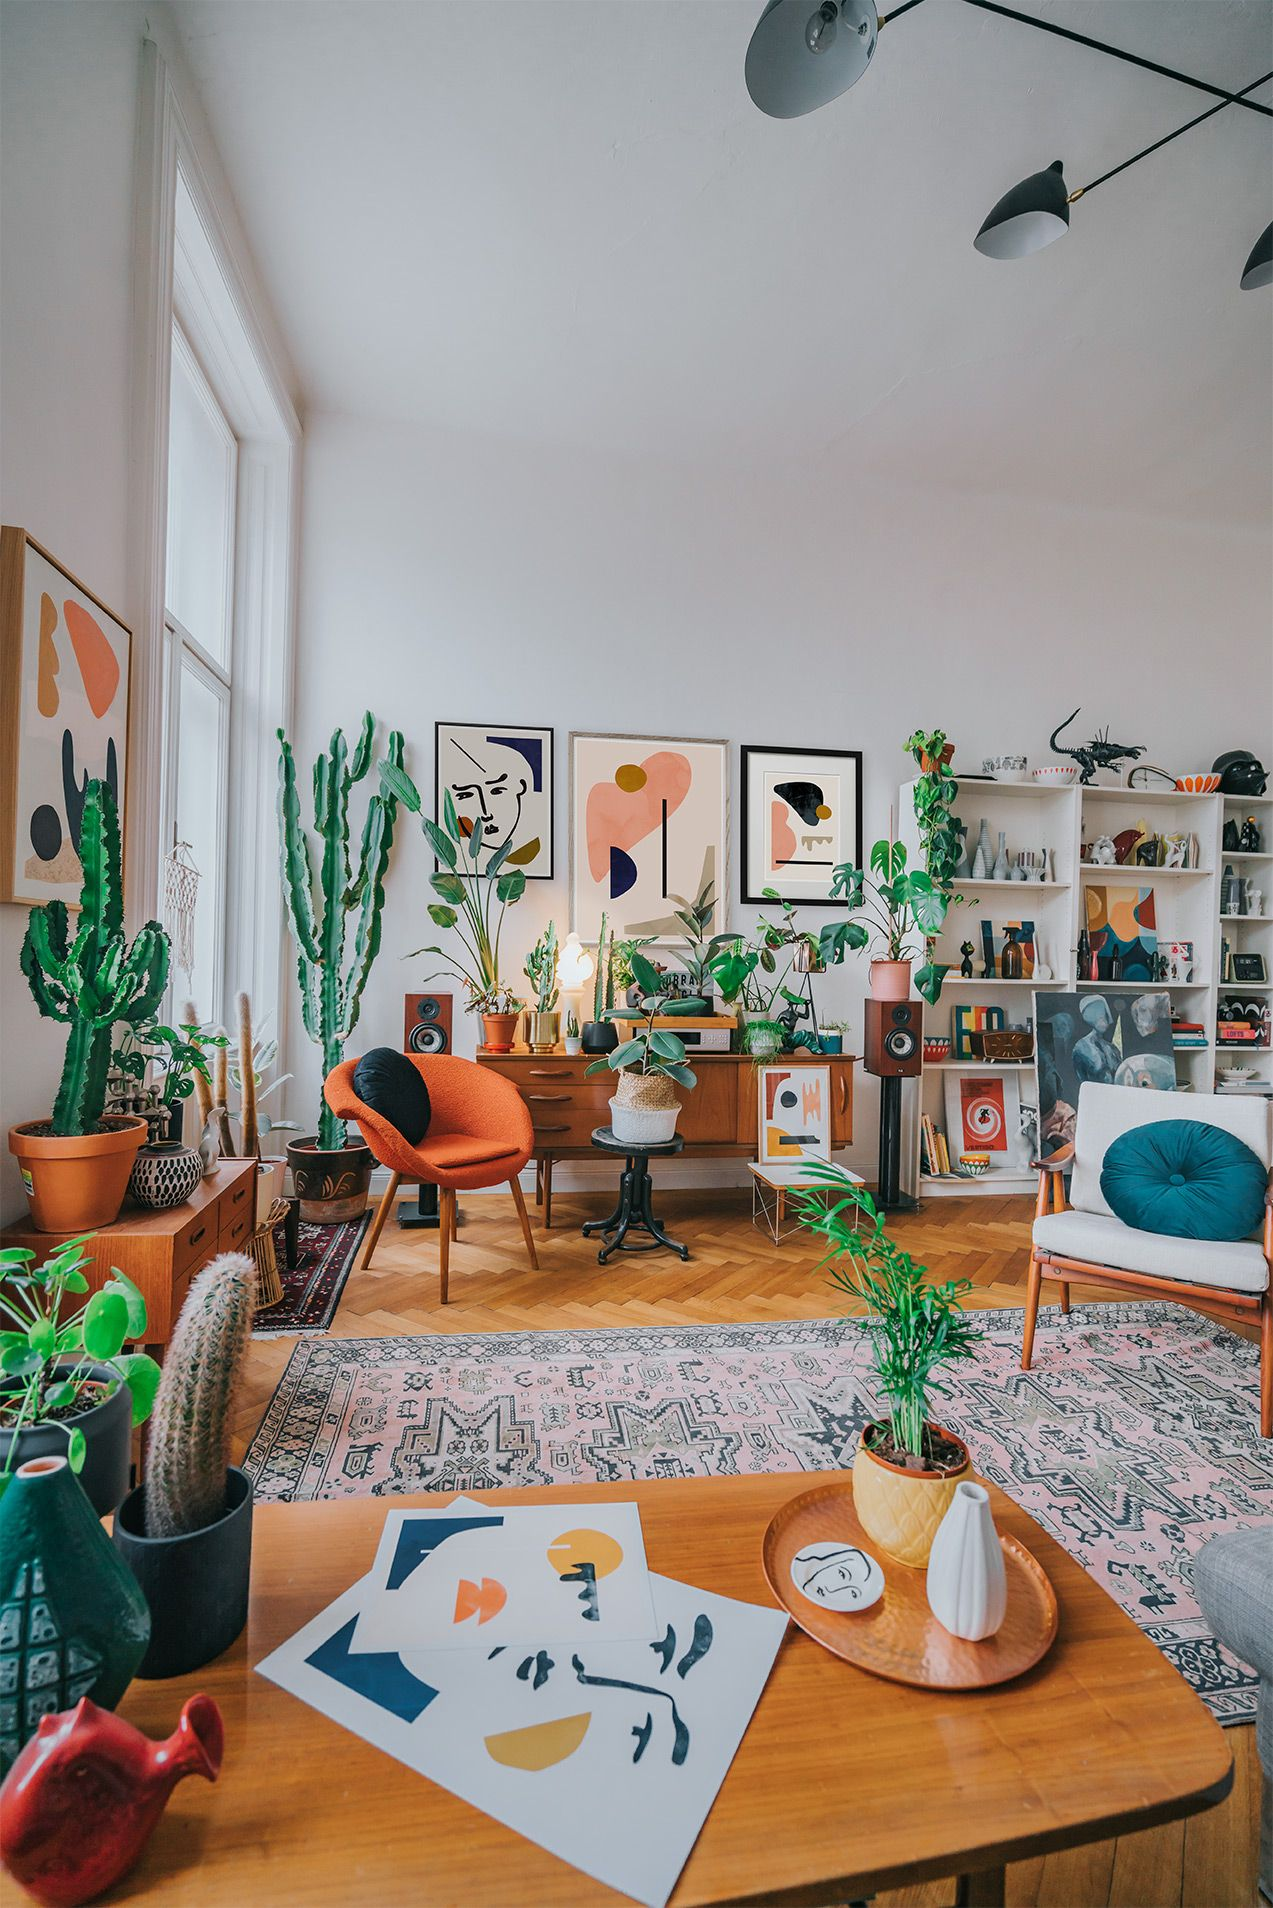 Minimalist art prints and paintings by Jan Skacelik inside of his mid-century boho interior, with a nice old furniture, rugs, and urban jungle #interiordesign #midcenturymodern #abstractart